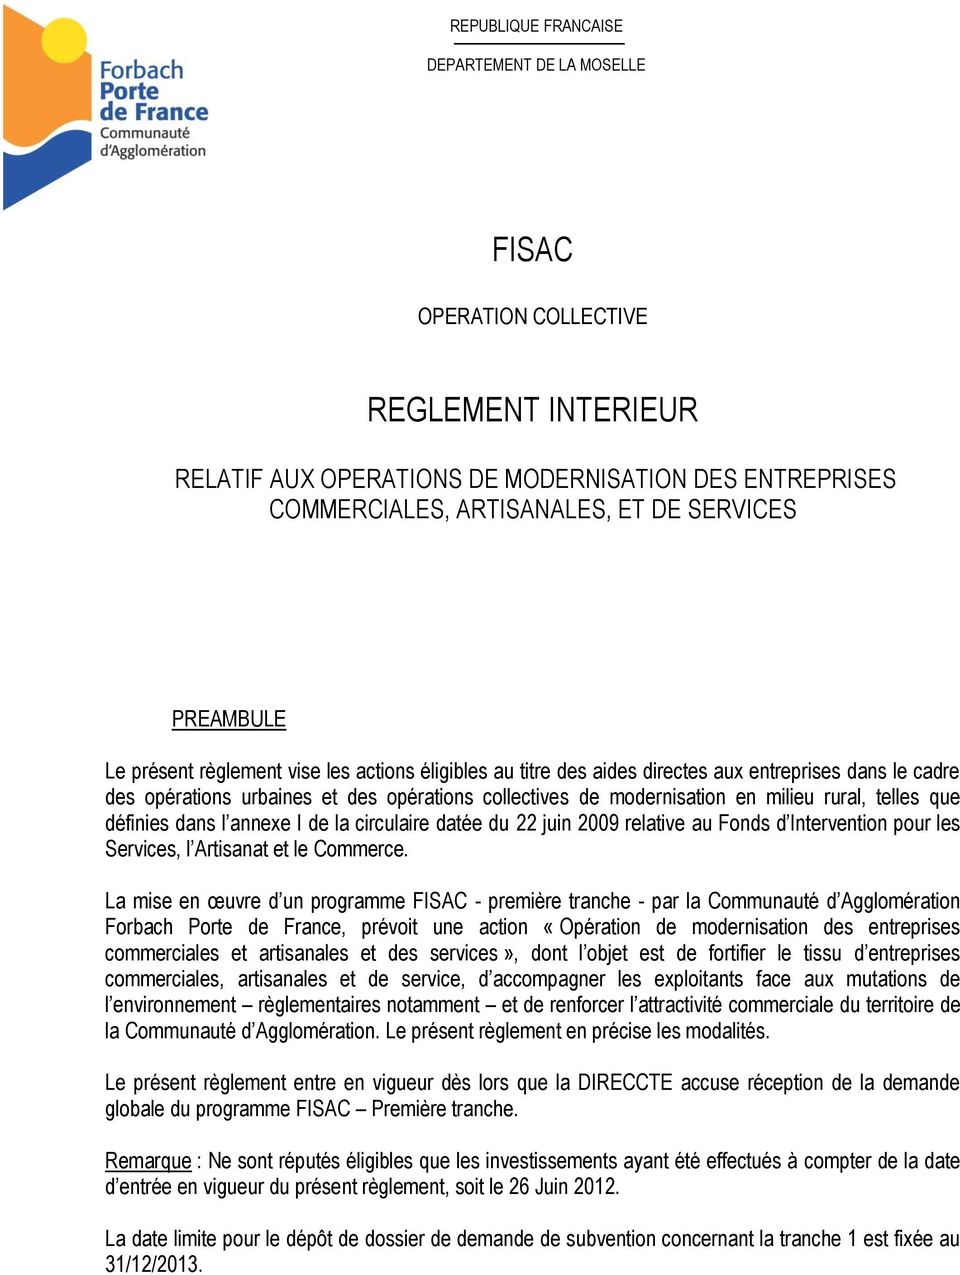 Fisac reglement interieur pdf for Depot reglement interieur